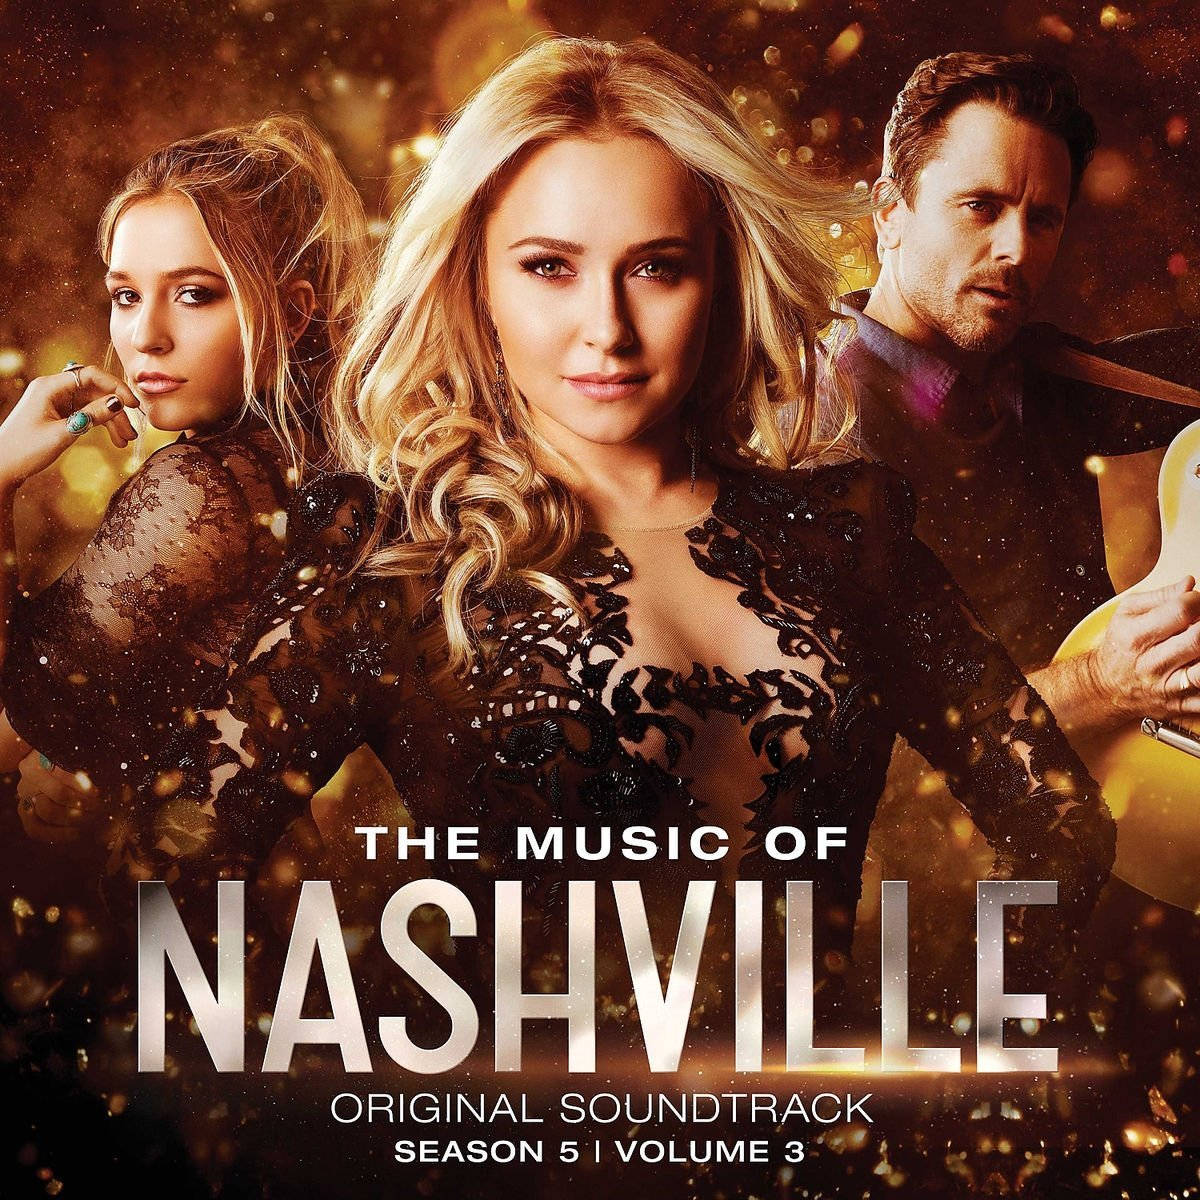 Nashvile [TV Series] - The Music Of Nashville, Season 5, Vol. 3 [Soundtrack]